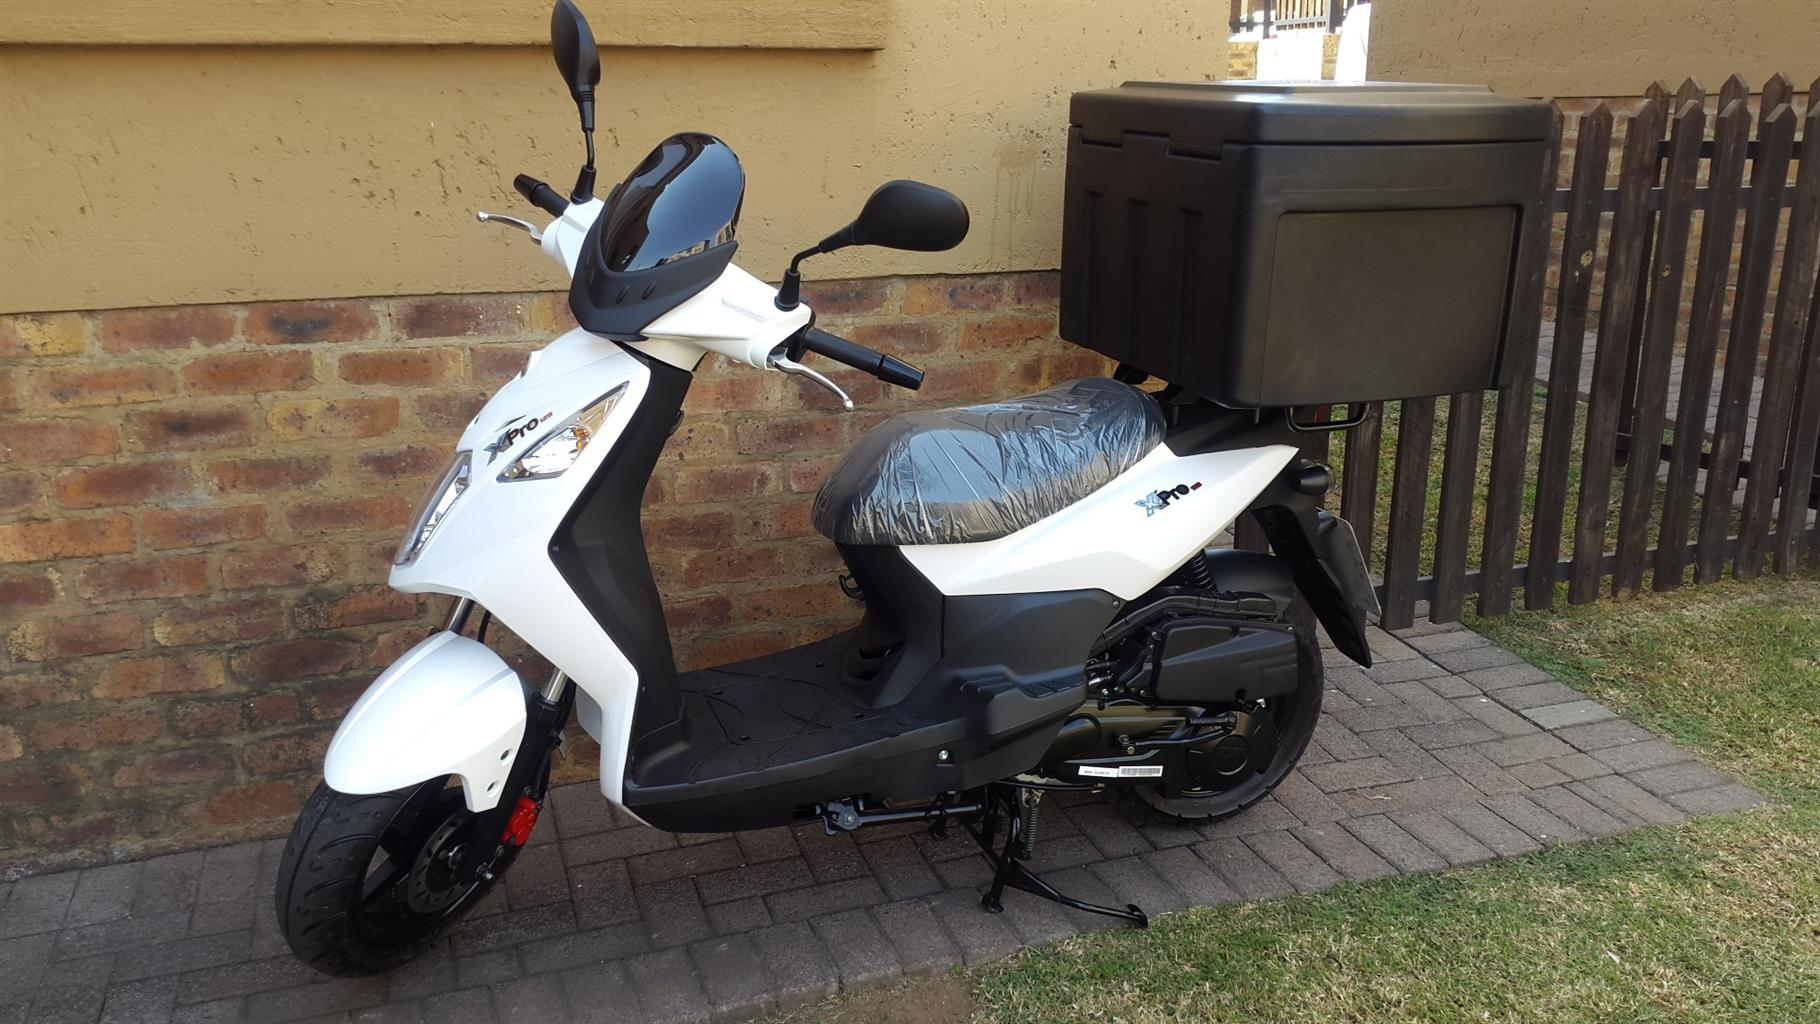 Delivery Scooter Sym X Pro 125cc 2020